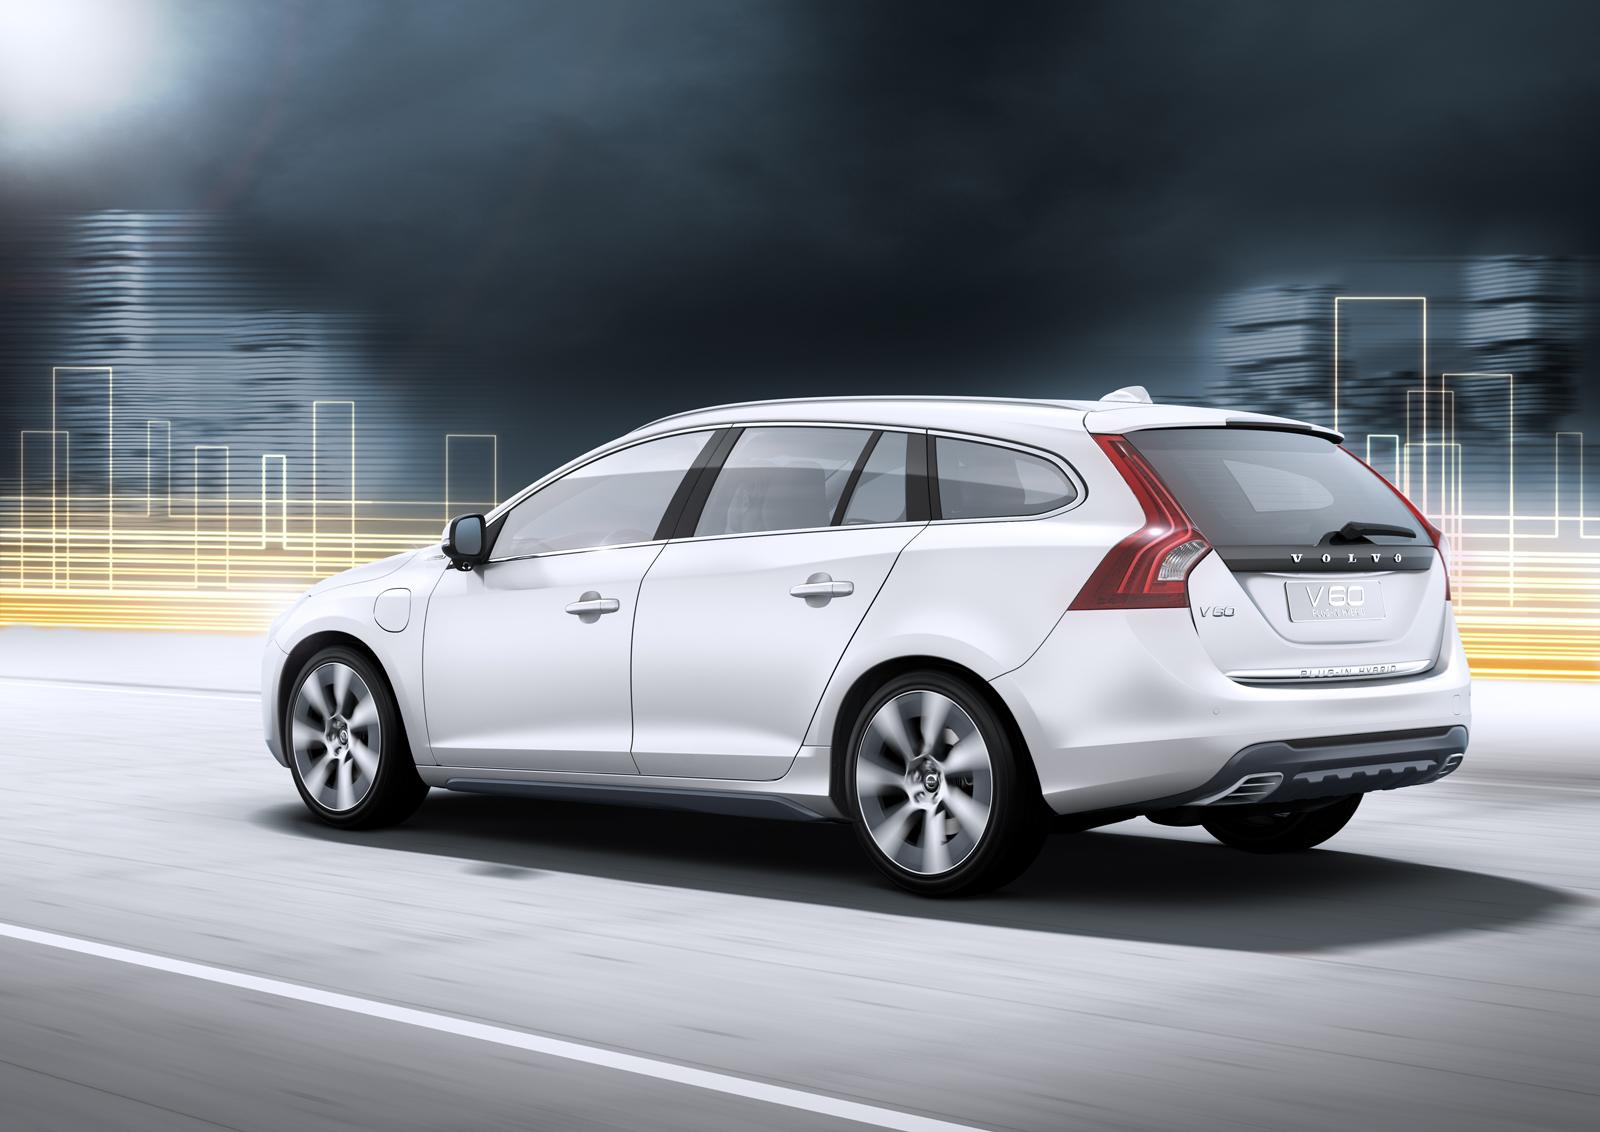 volvo v60 plug in hybrid voiture hybride essais prix caract ristiques. Black Bedroom Furniture Sets. Home Design Ideas